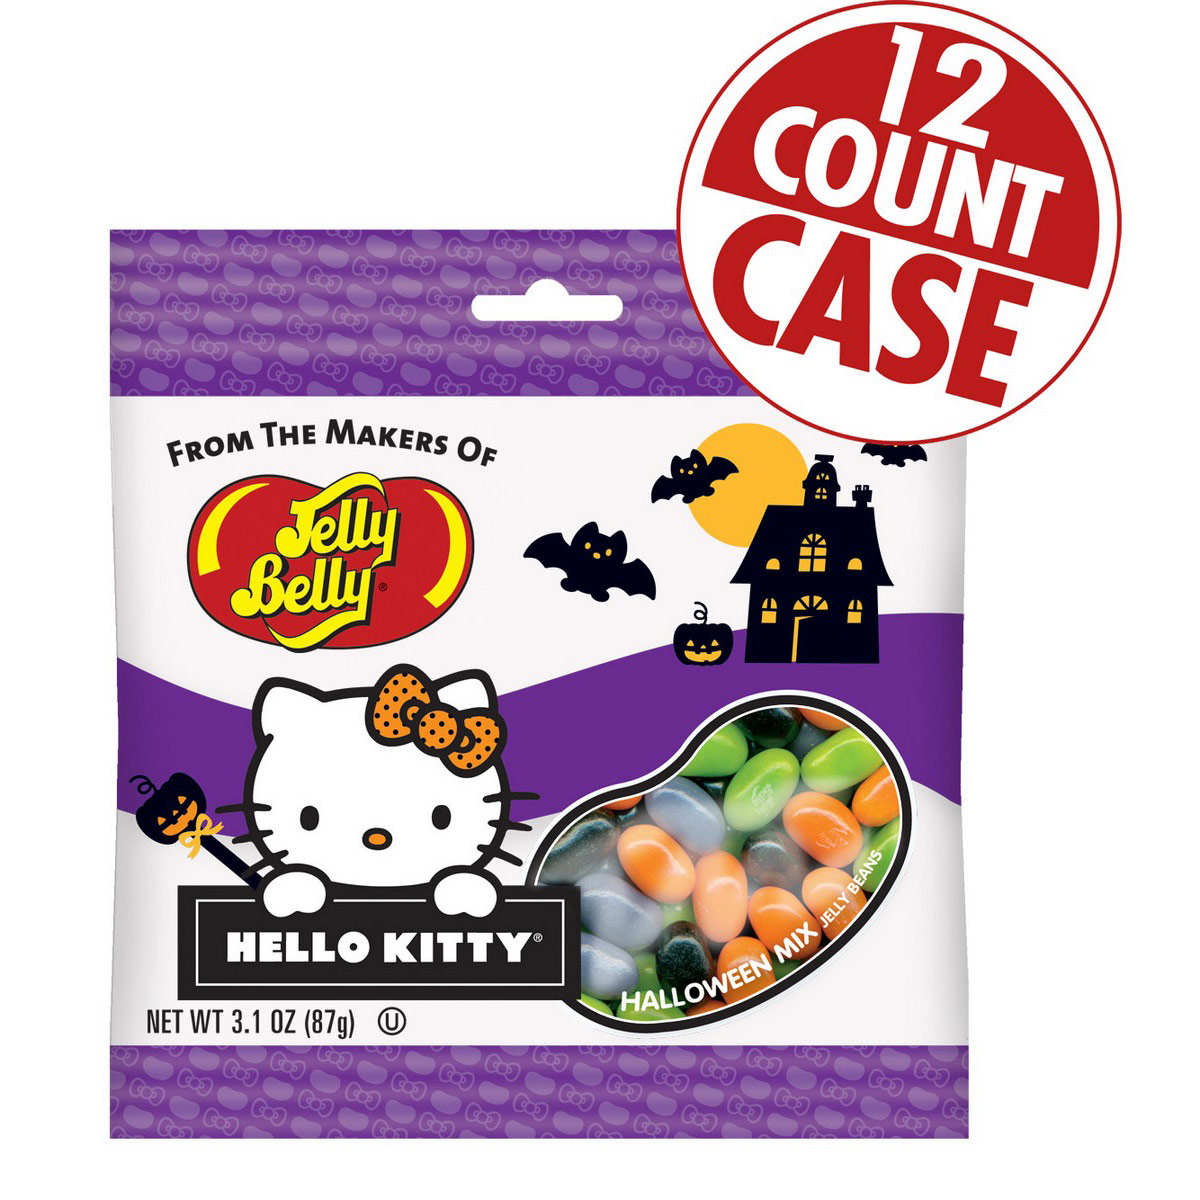 Hello Kitty<sup>®</sup> Halloween Mix Jelly Beans - 3.1 oz Bag - 12 Count Case